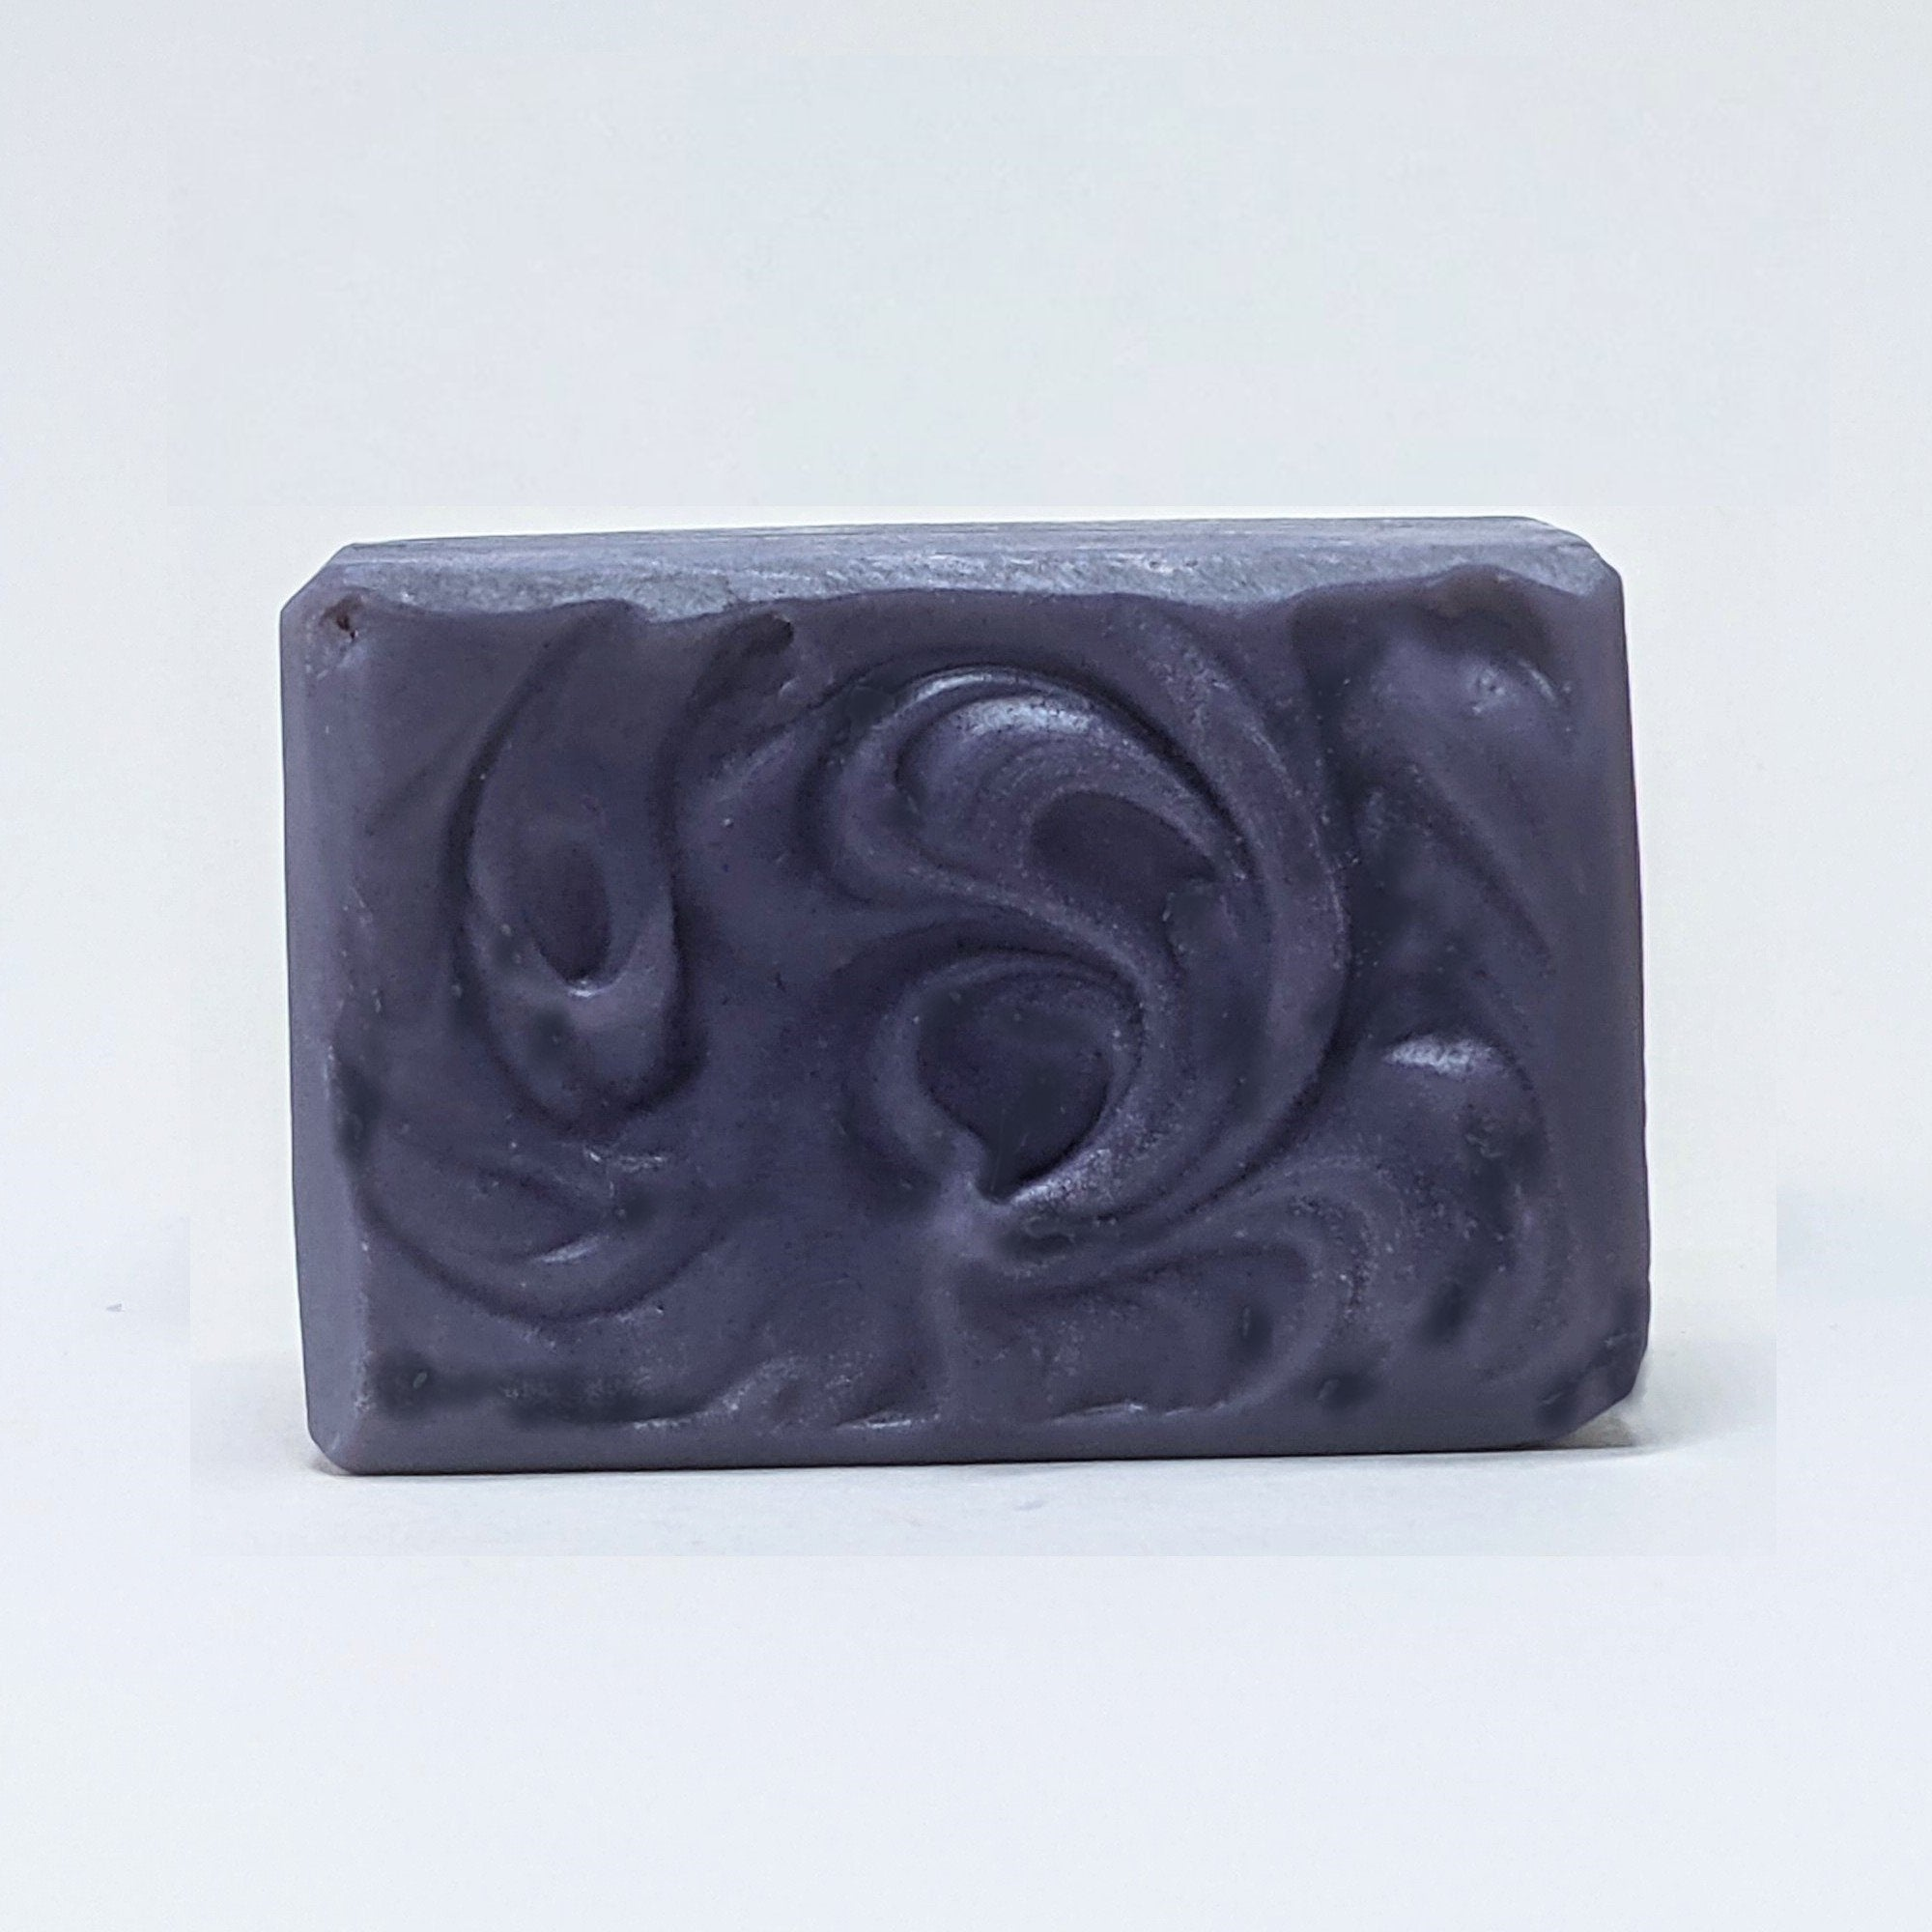 Frozen Apple All Natural Goat's Milk Soap Bar with Essential Oils, Honey, Oatmeal, and Shea Butter - Thompson's Luxury Soap